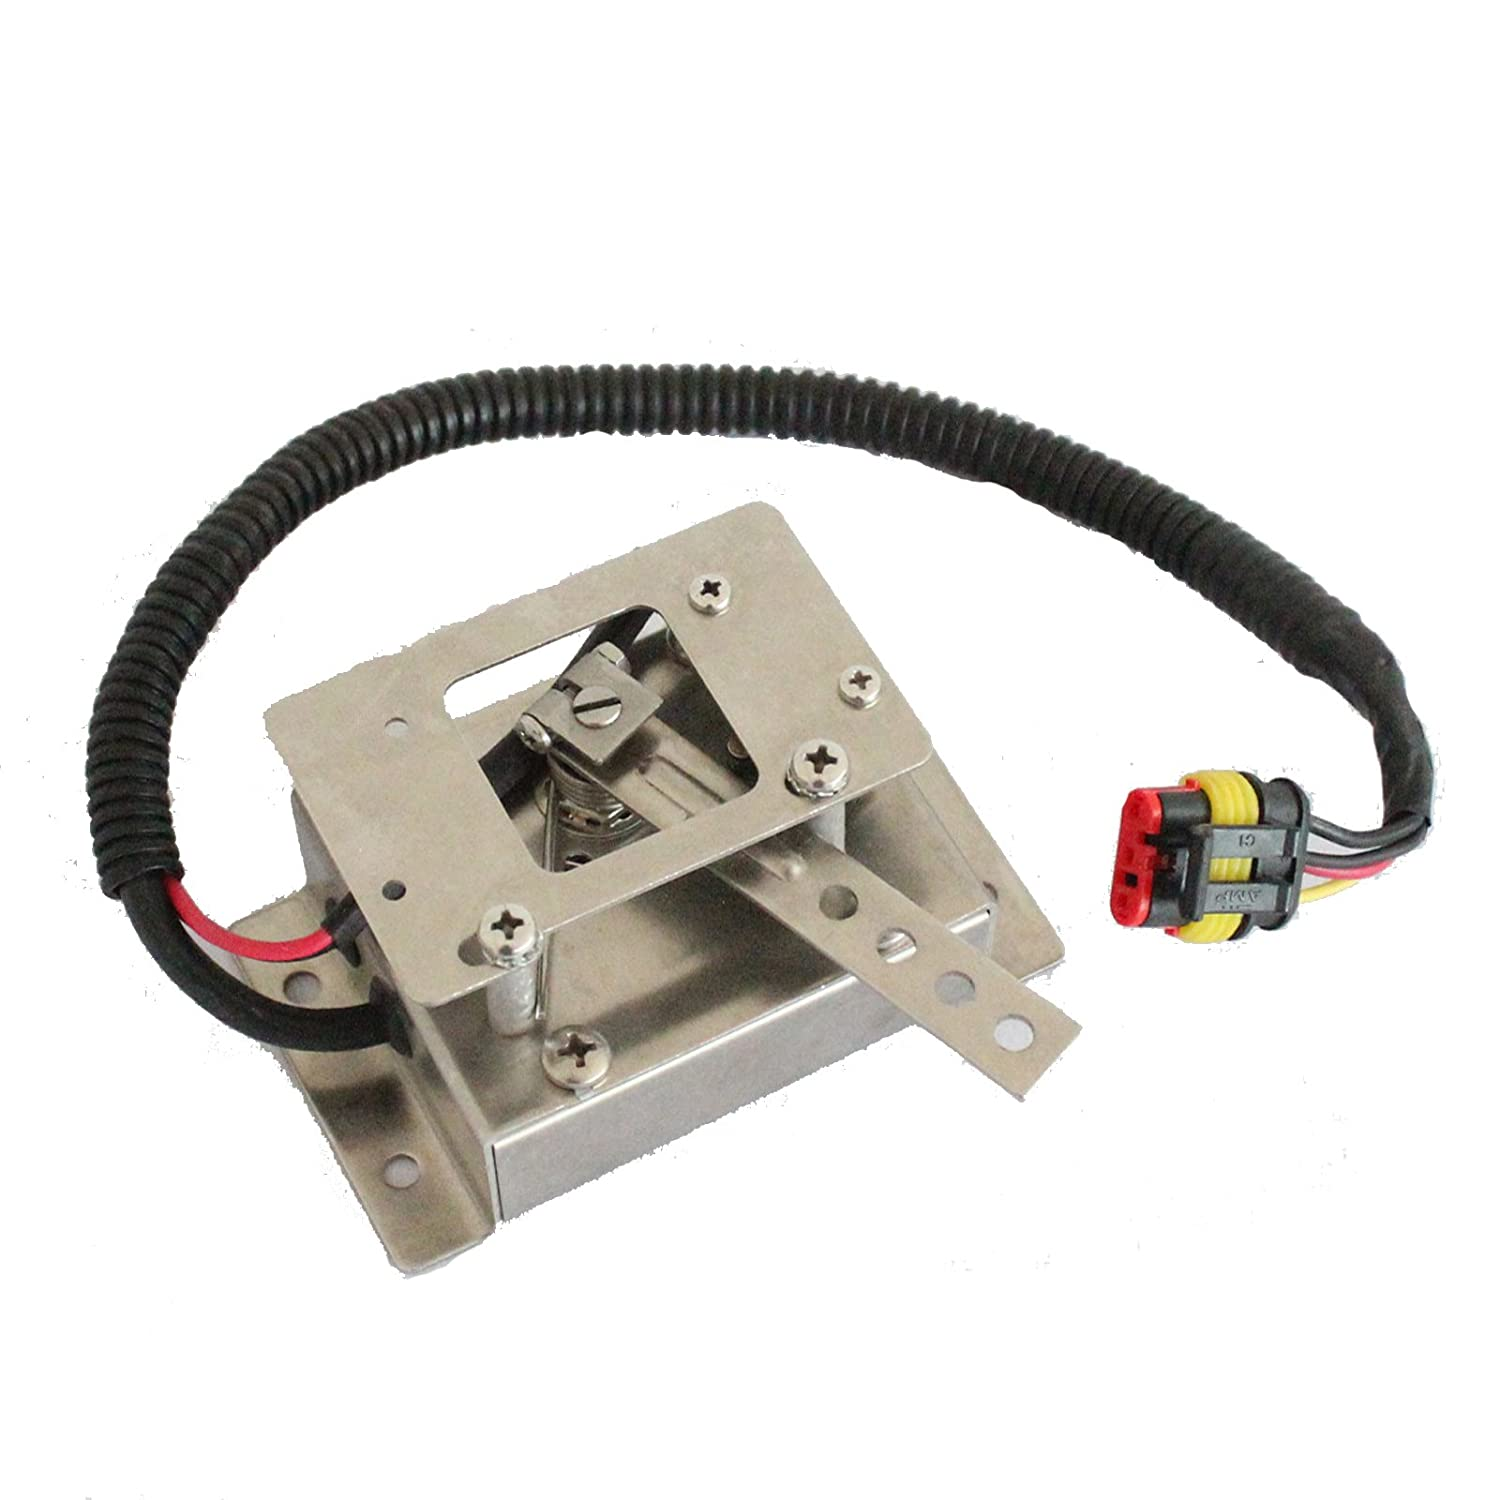 Holdwell Throttle Pb 6 Type 0 5k With Ms 3 Wires 8 2wire Wiring A Potentiometer For Curtis Automotive